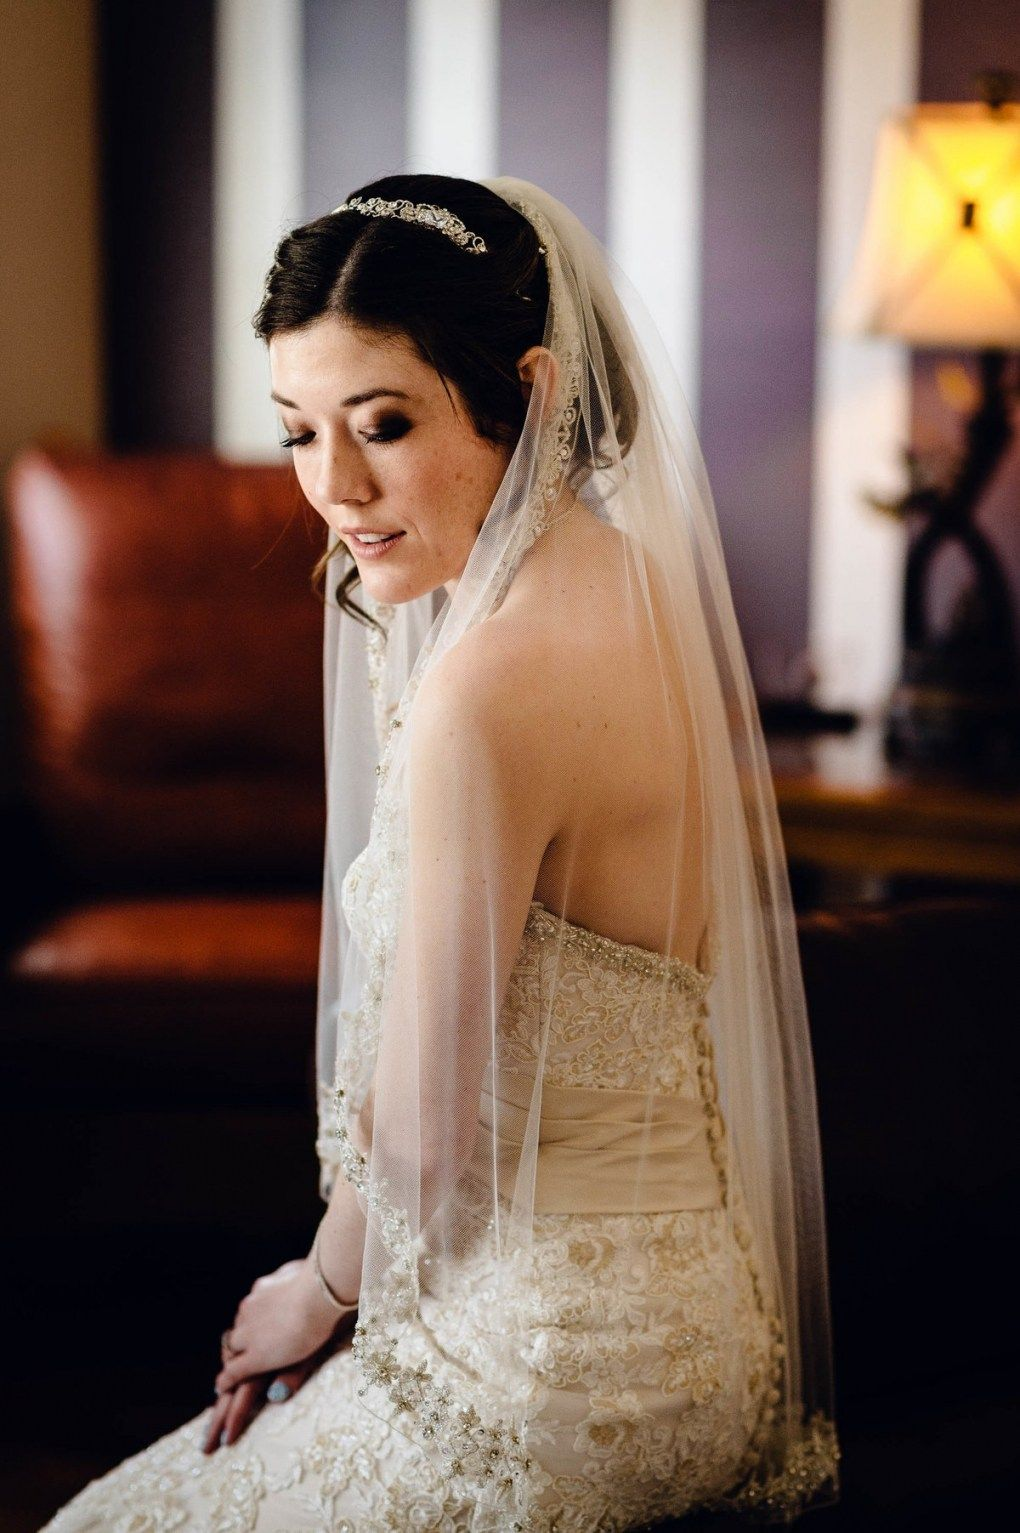 wedding hair and makeup el paso tx | hairstyles ideas for me